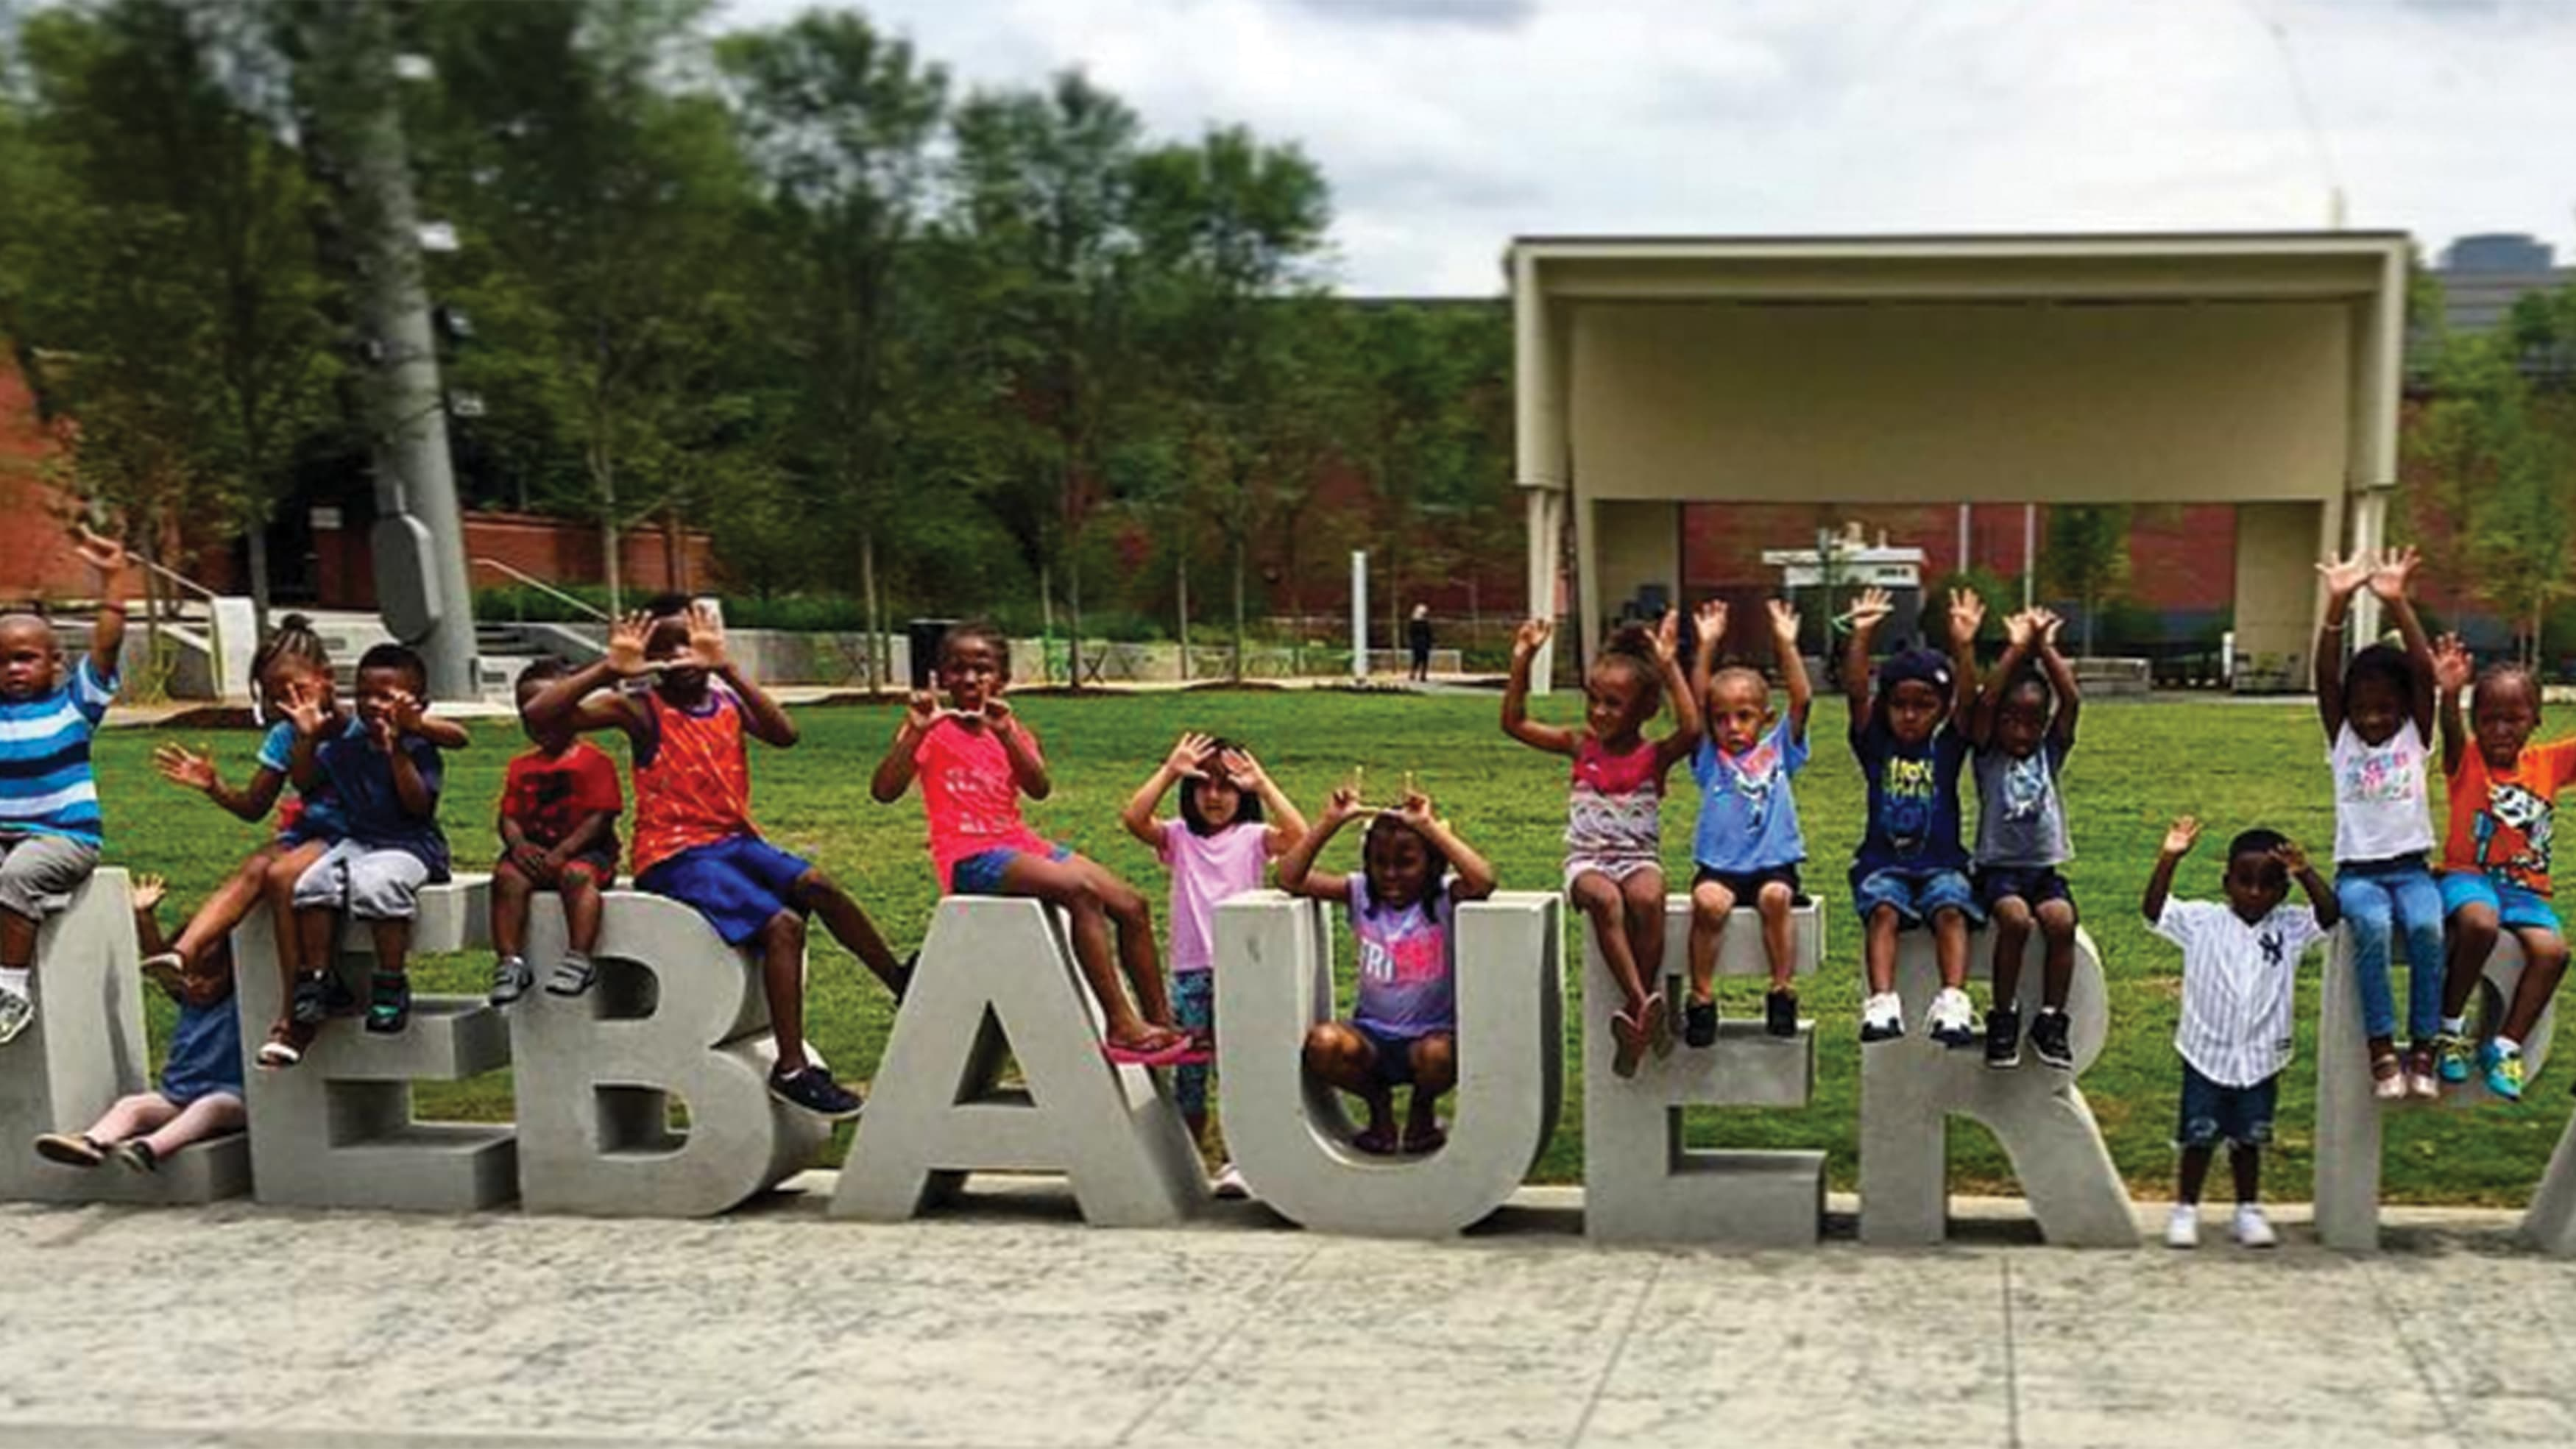 Kids gather in front of monument sign for LeBauer Park